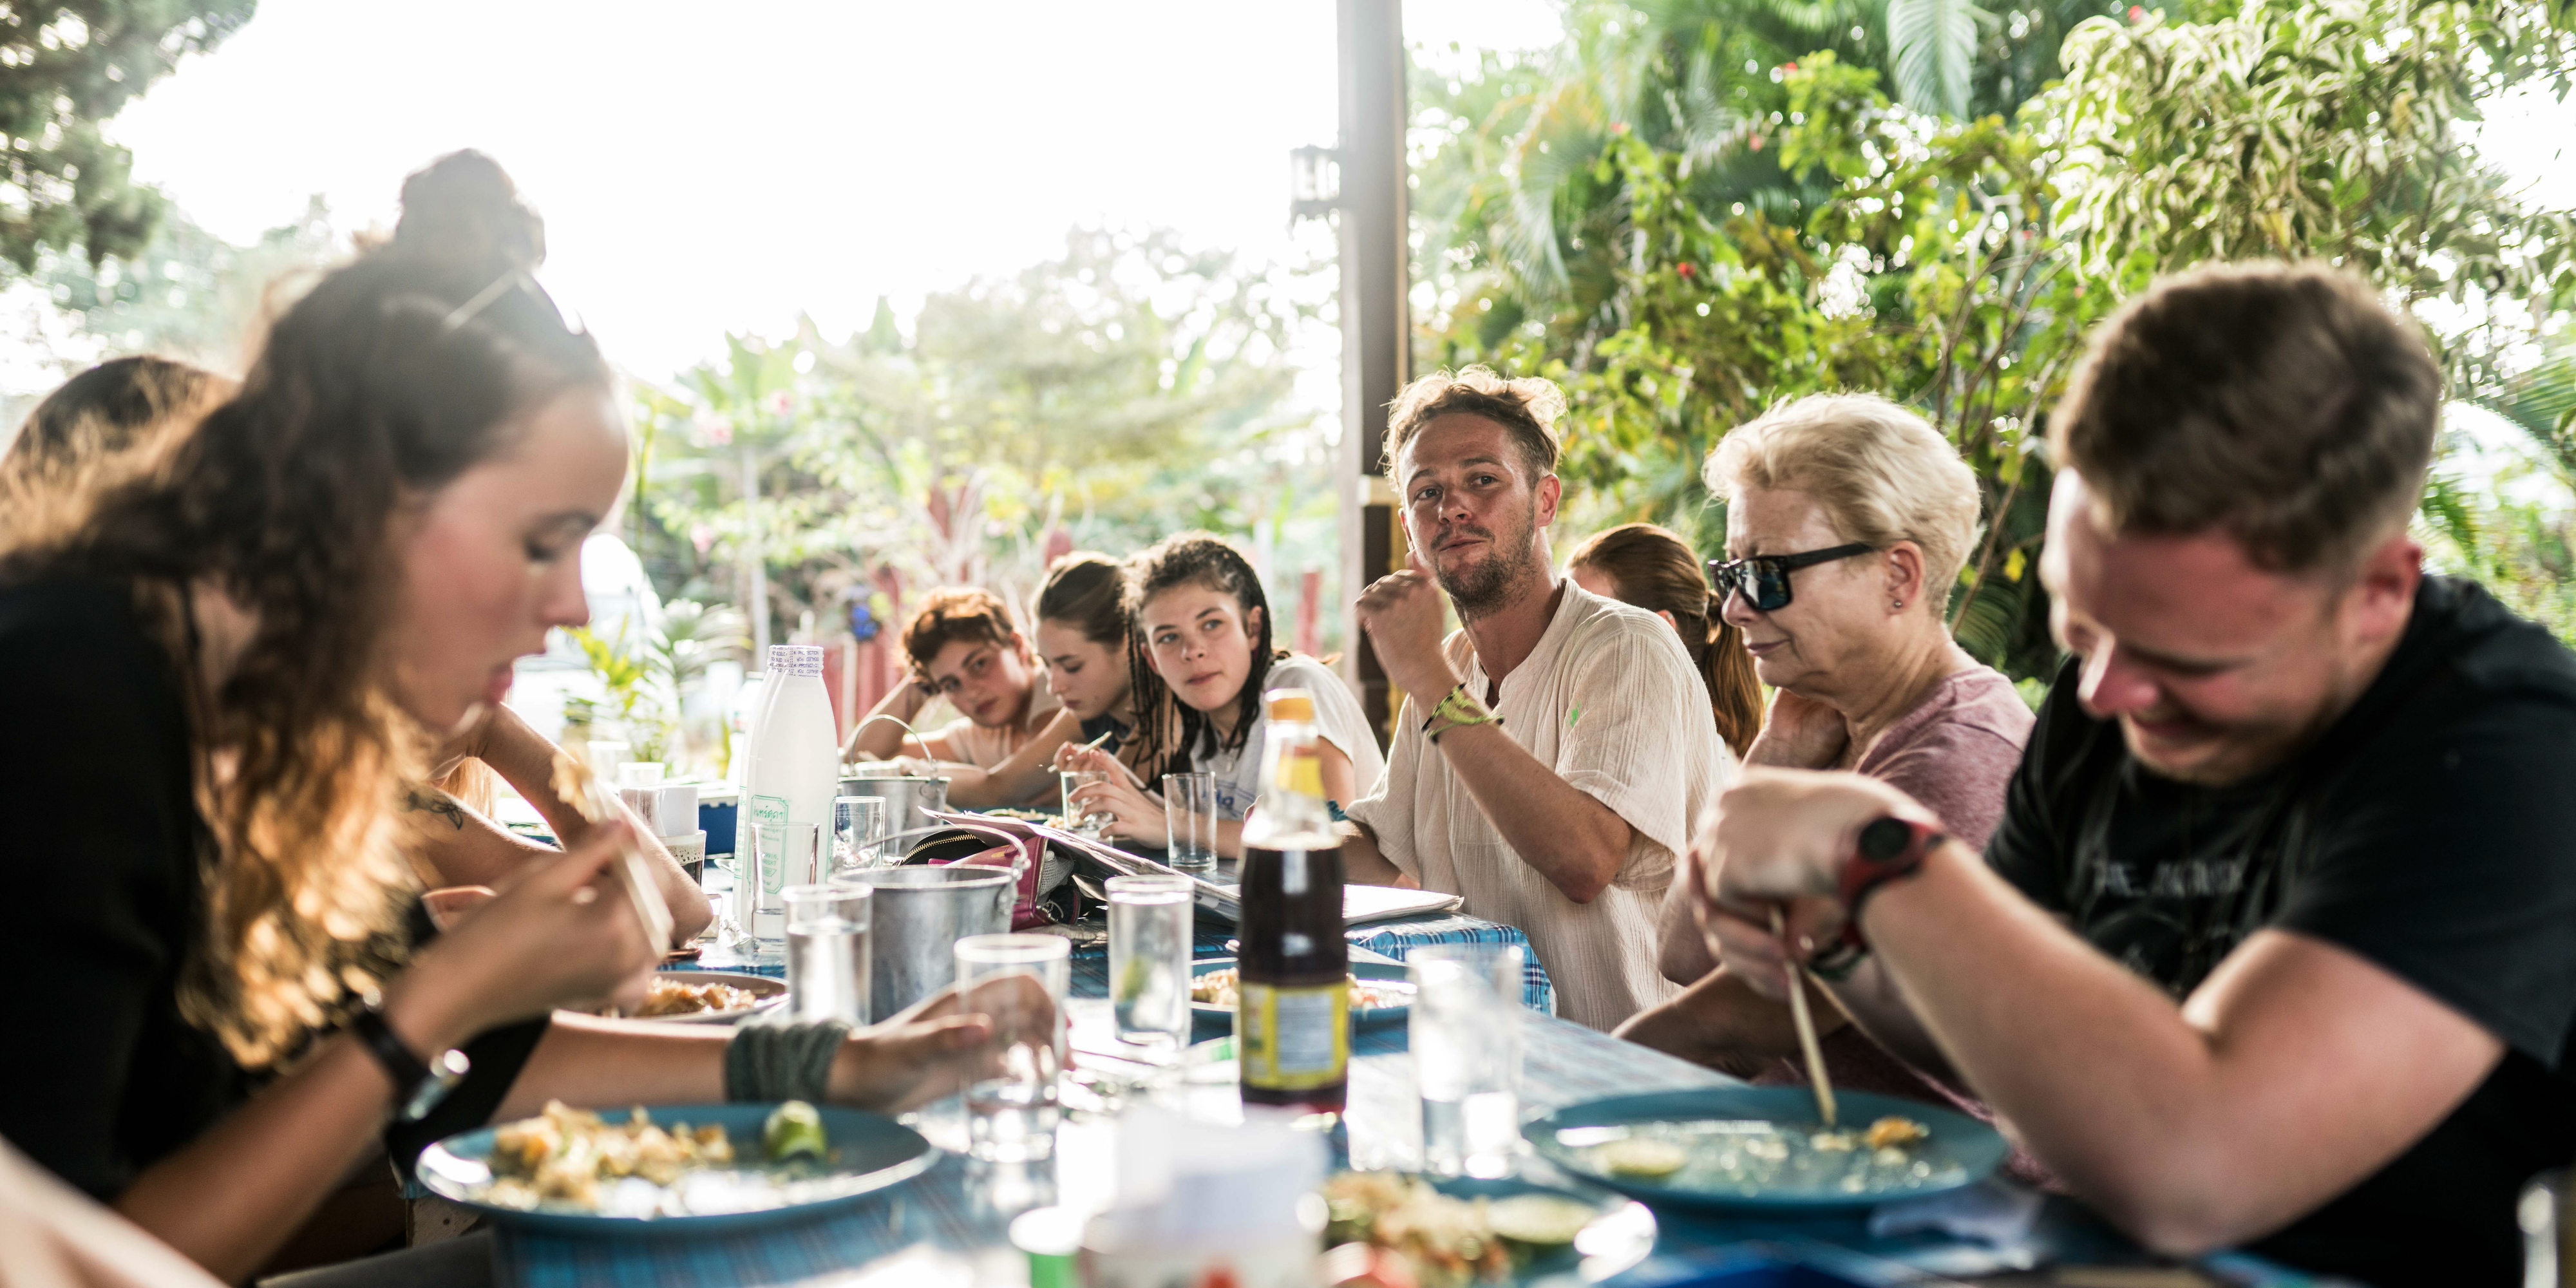 Taking a gap year as part of a program can be easier. Here, GVI participants in Chiang Mai share a group meal. Food and accomodation are taken care of in all GVI programs.